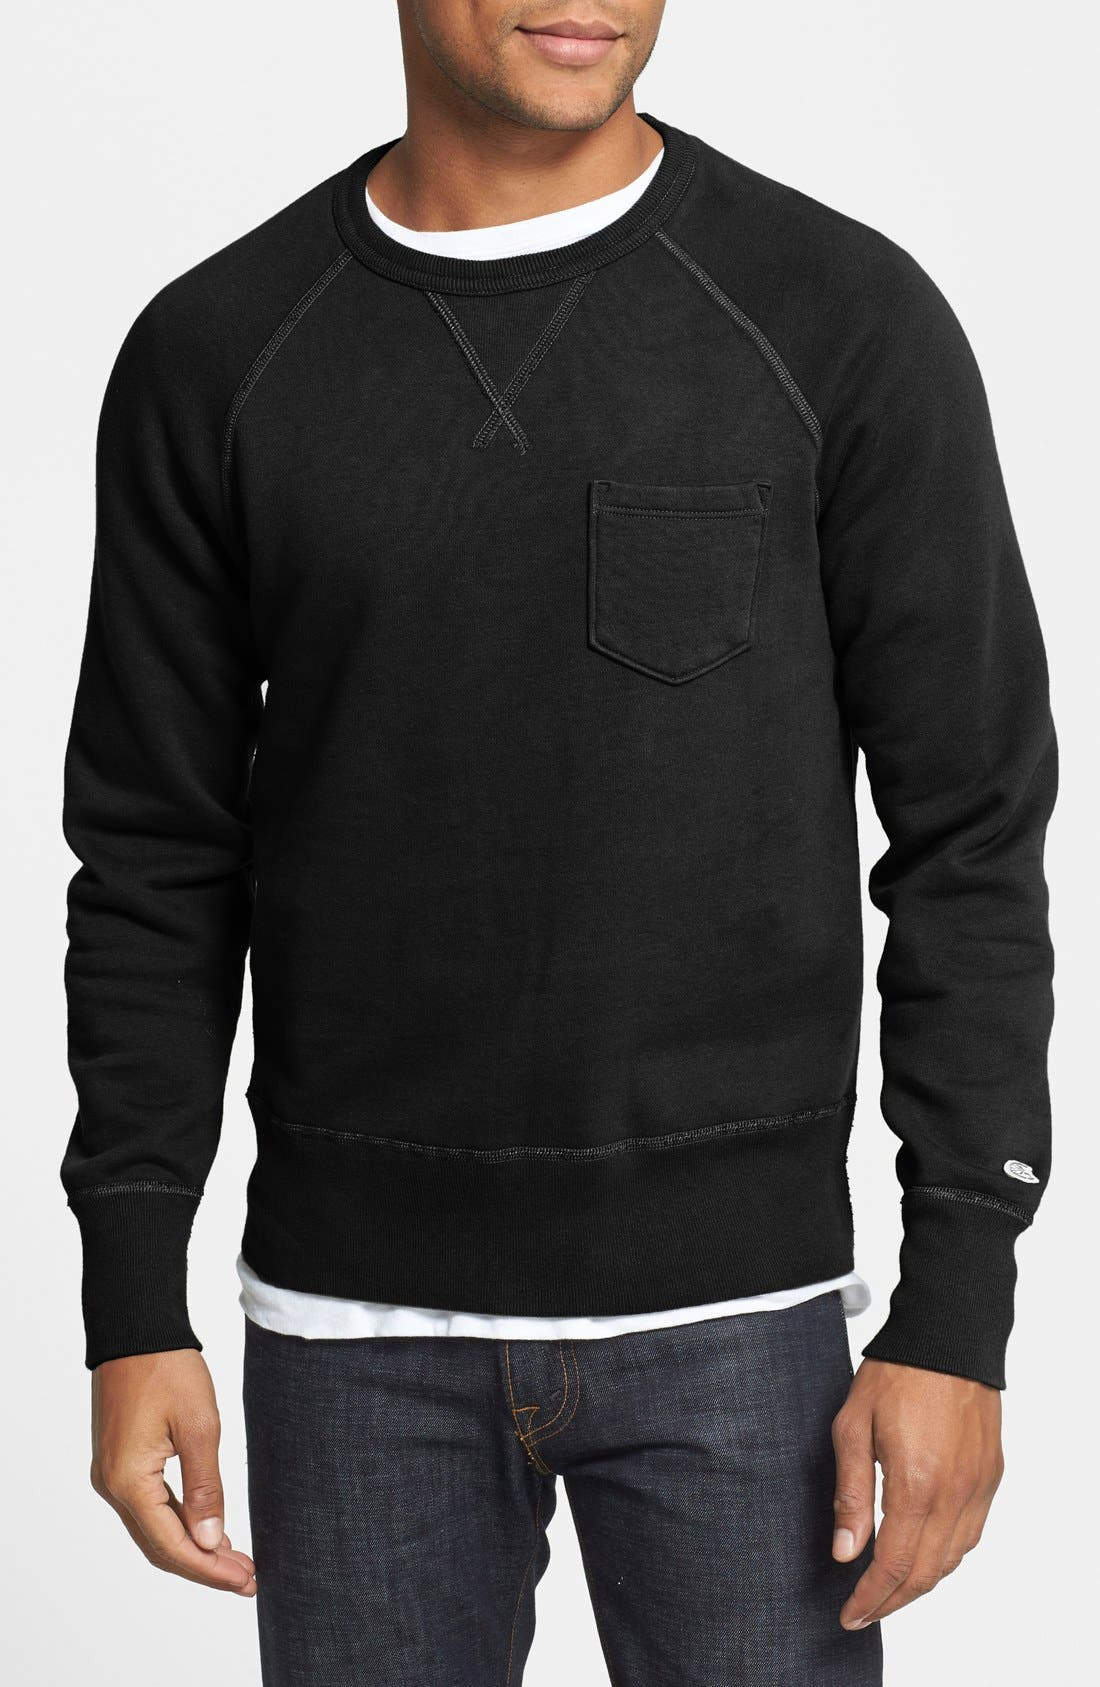 TODD SNYDER + CHAMPION 'City Gym' Sweatshirt, Main, color, 001